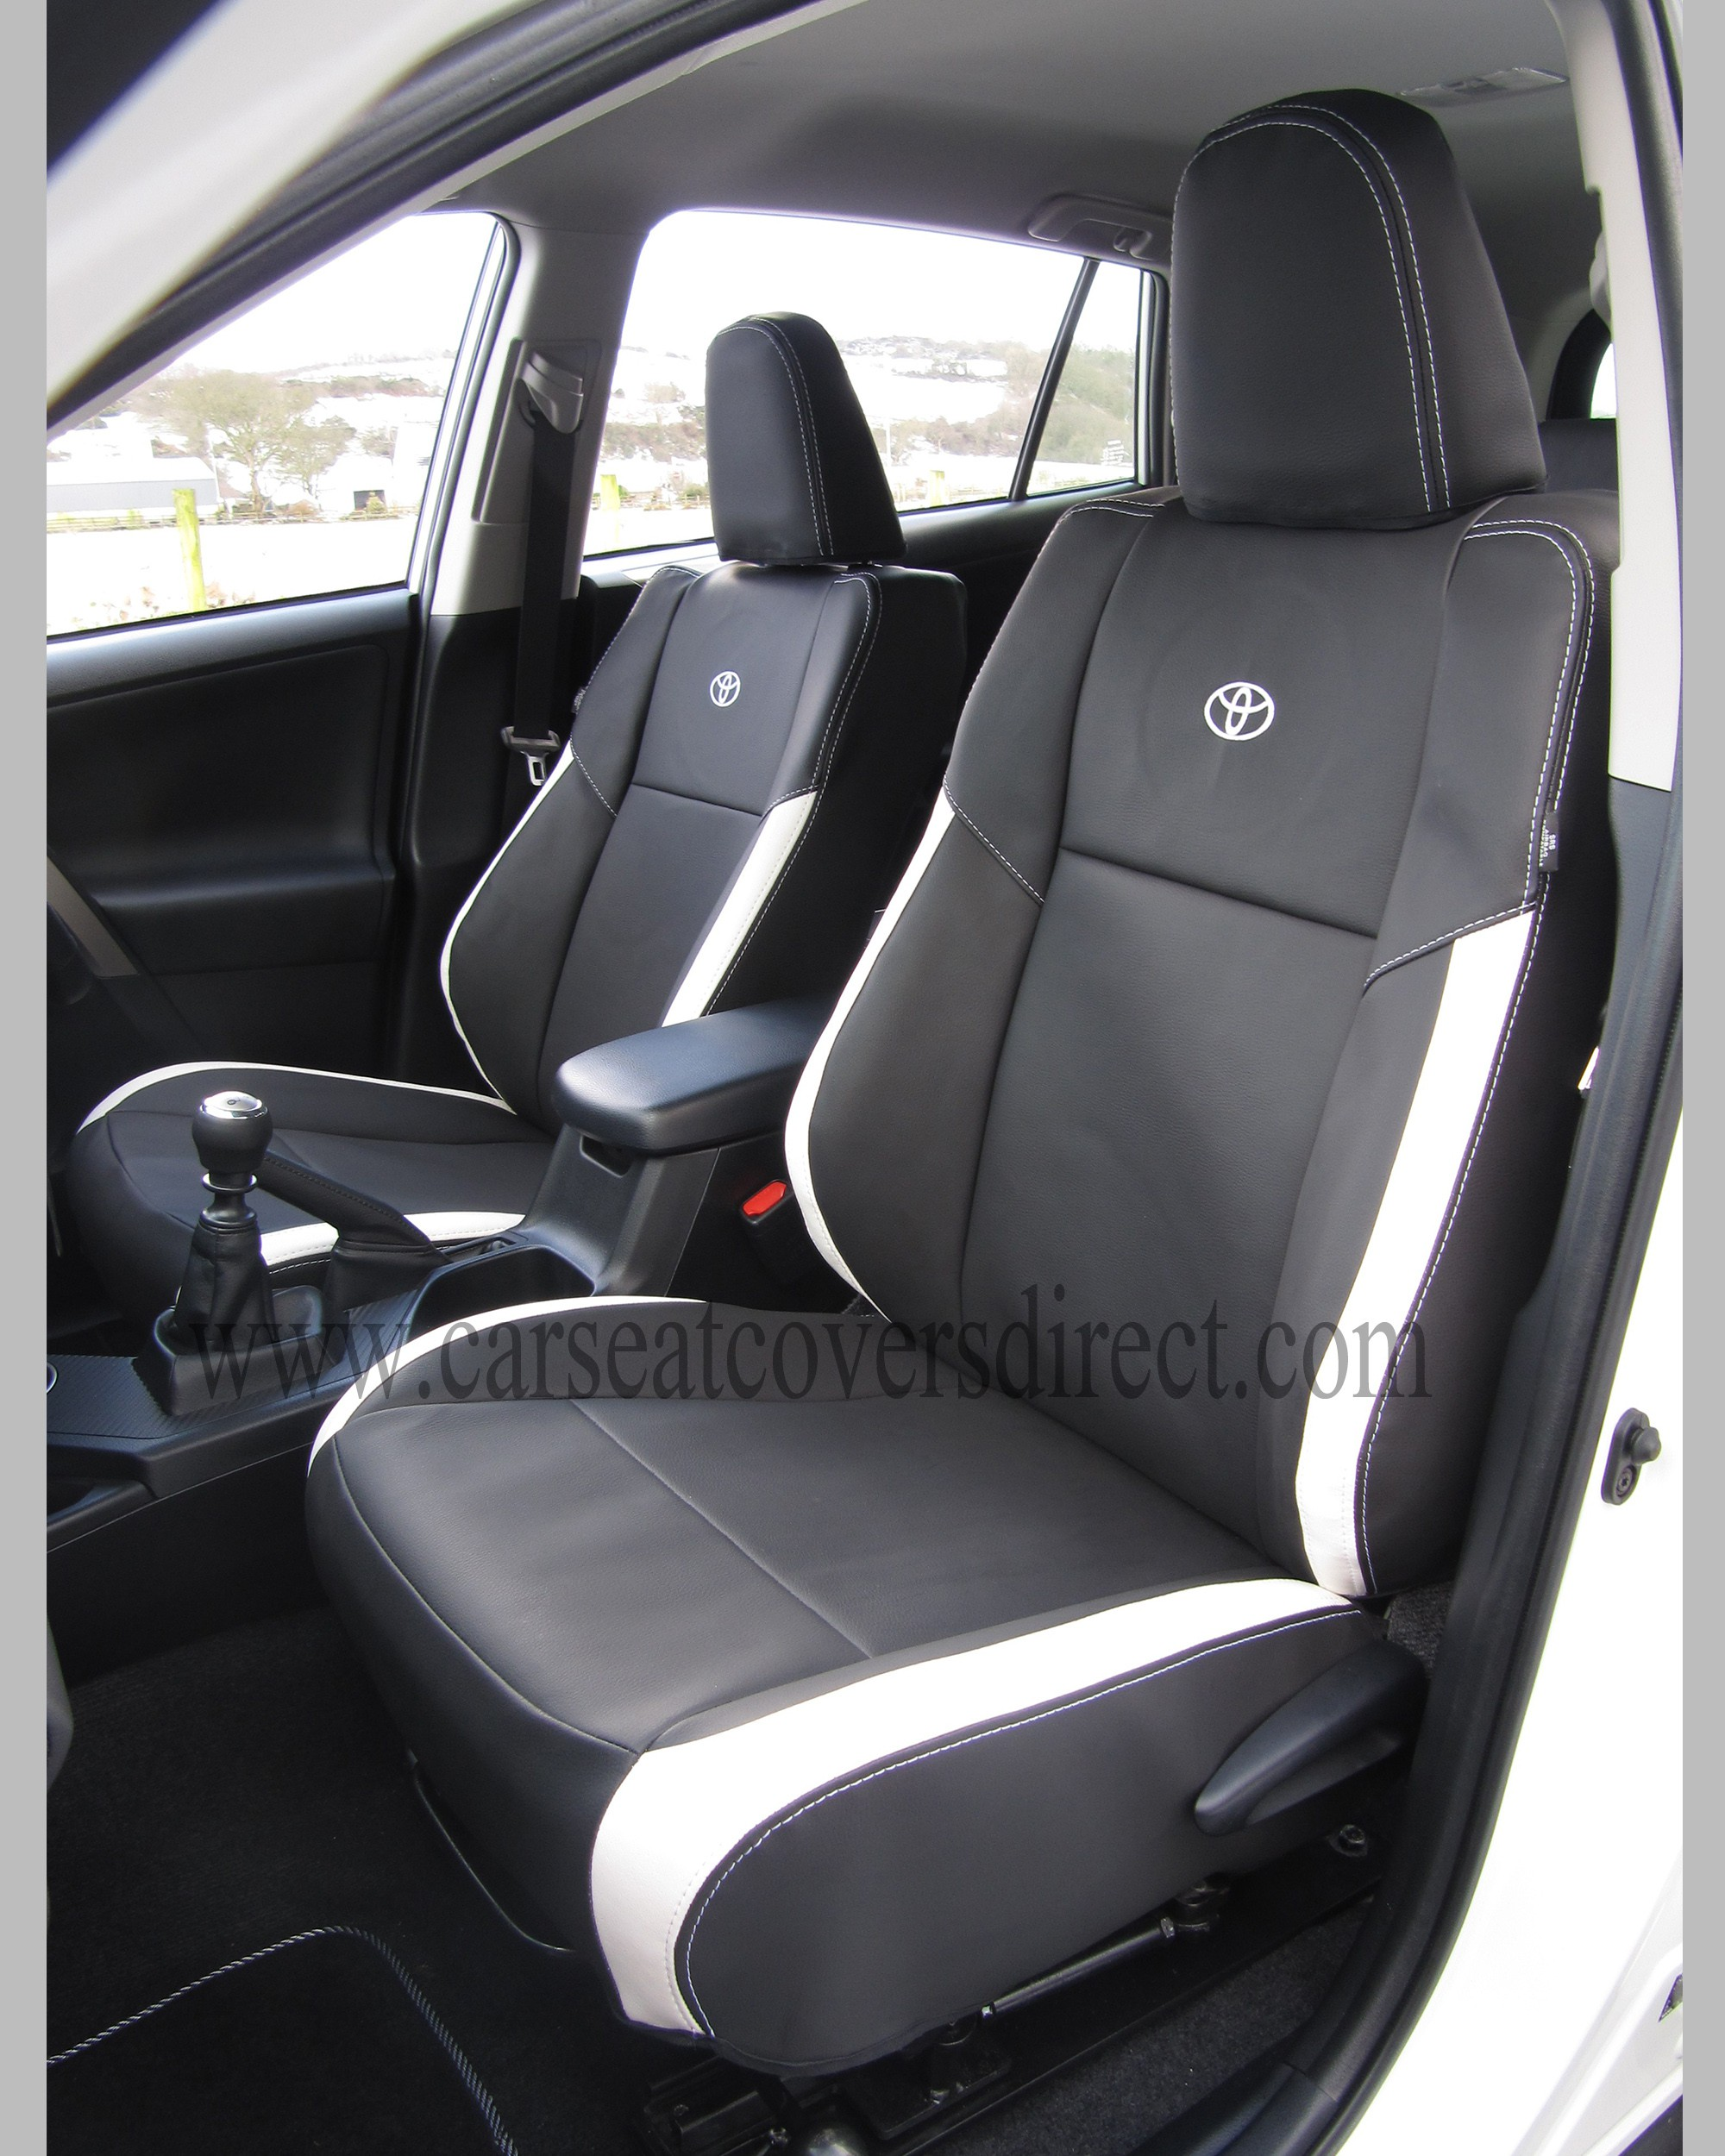 Toyota Prius 4th Generation: Search Results For: 'Toyota' Car Seat Covers Direct